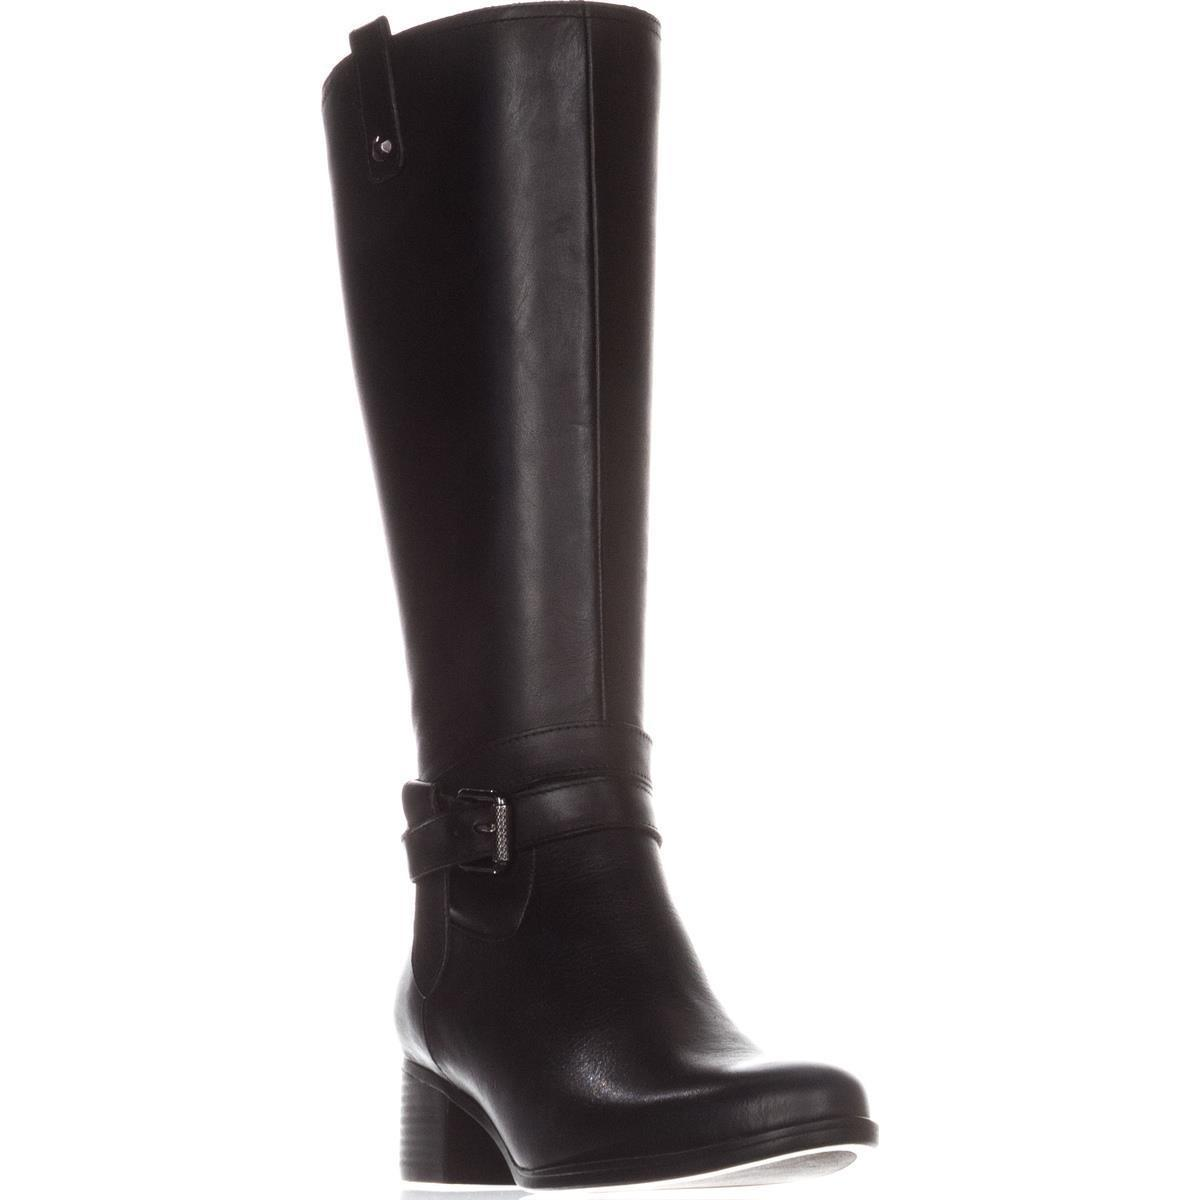 9e5c08617dc0 Lyst - Naturalizer Dev Riding Boots in Black